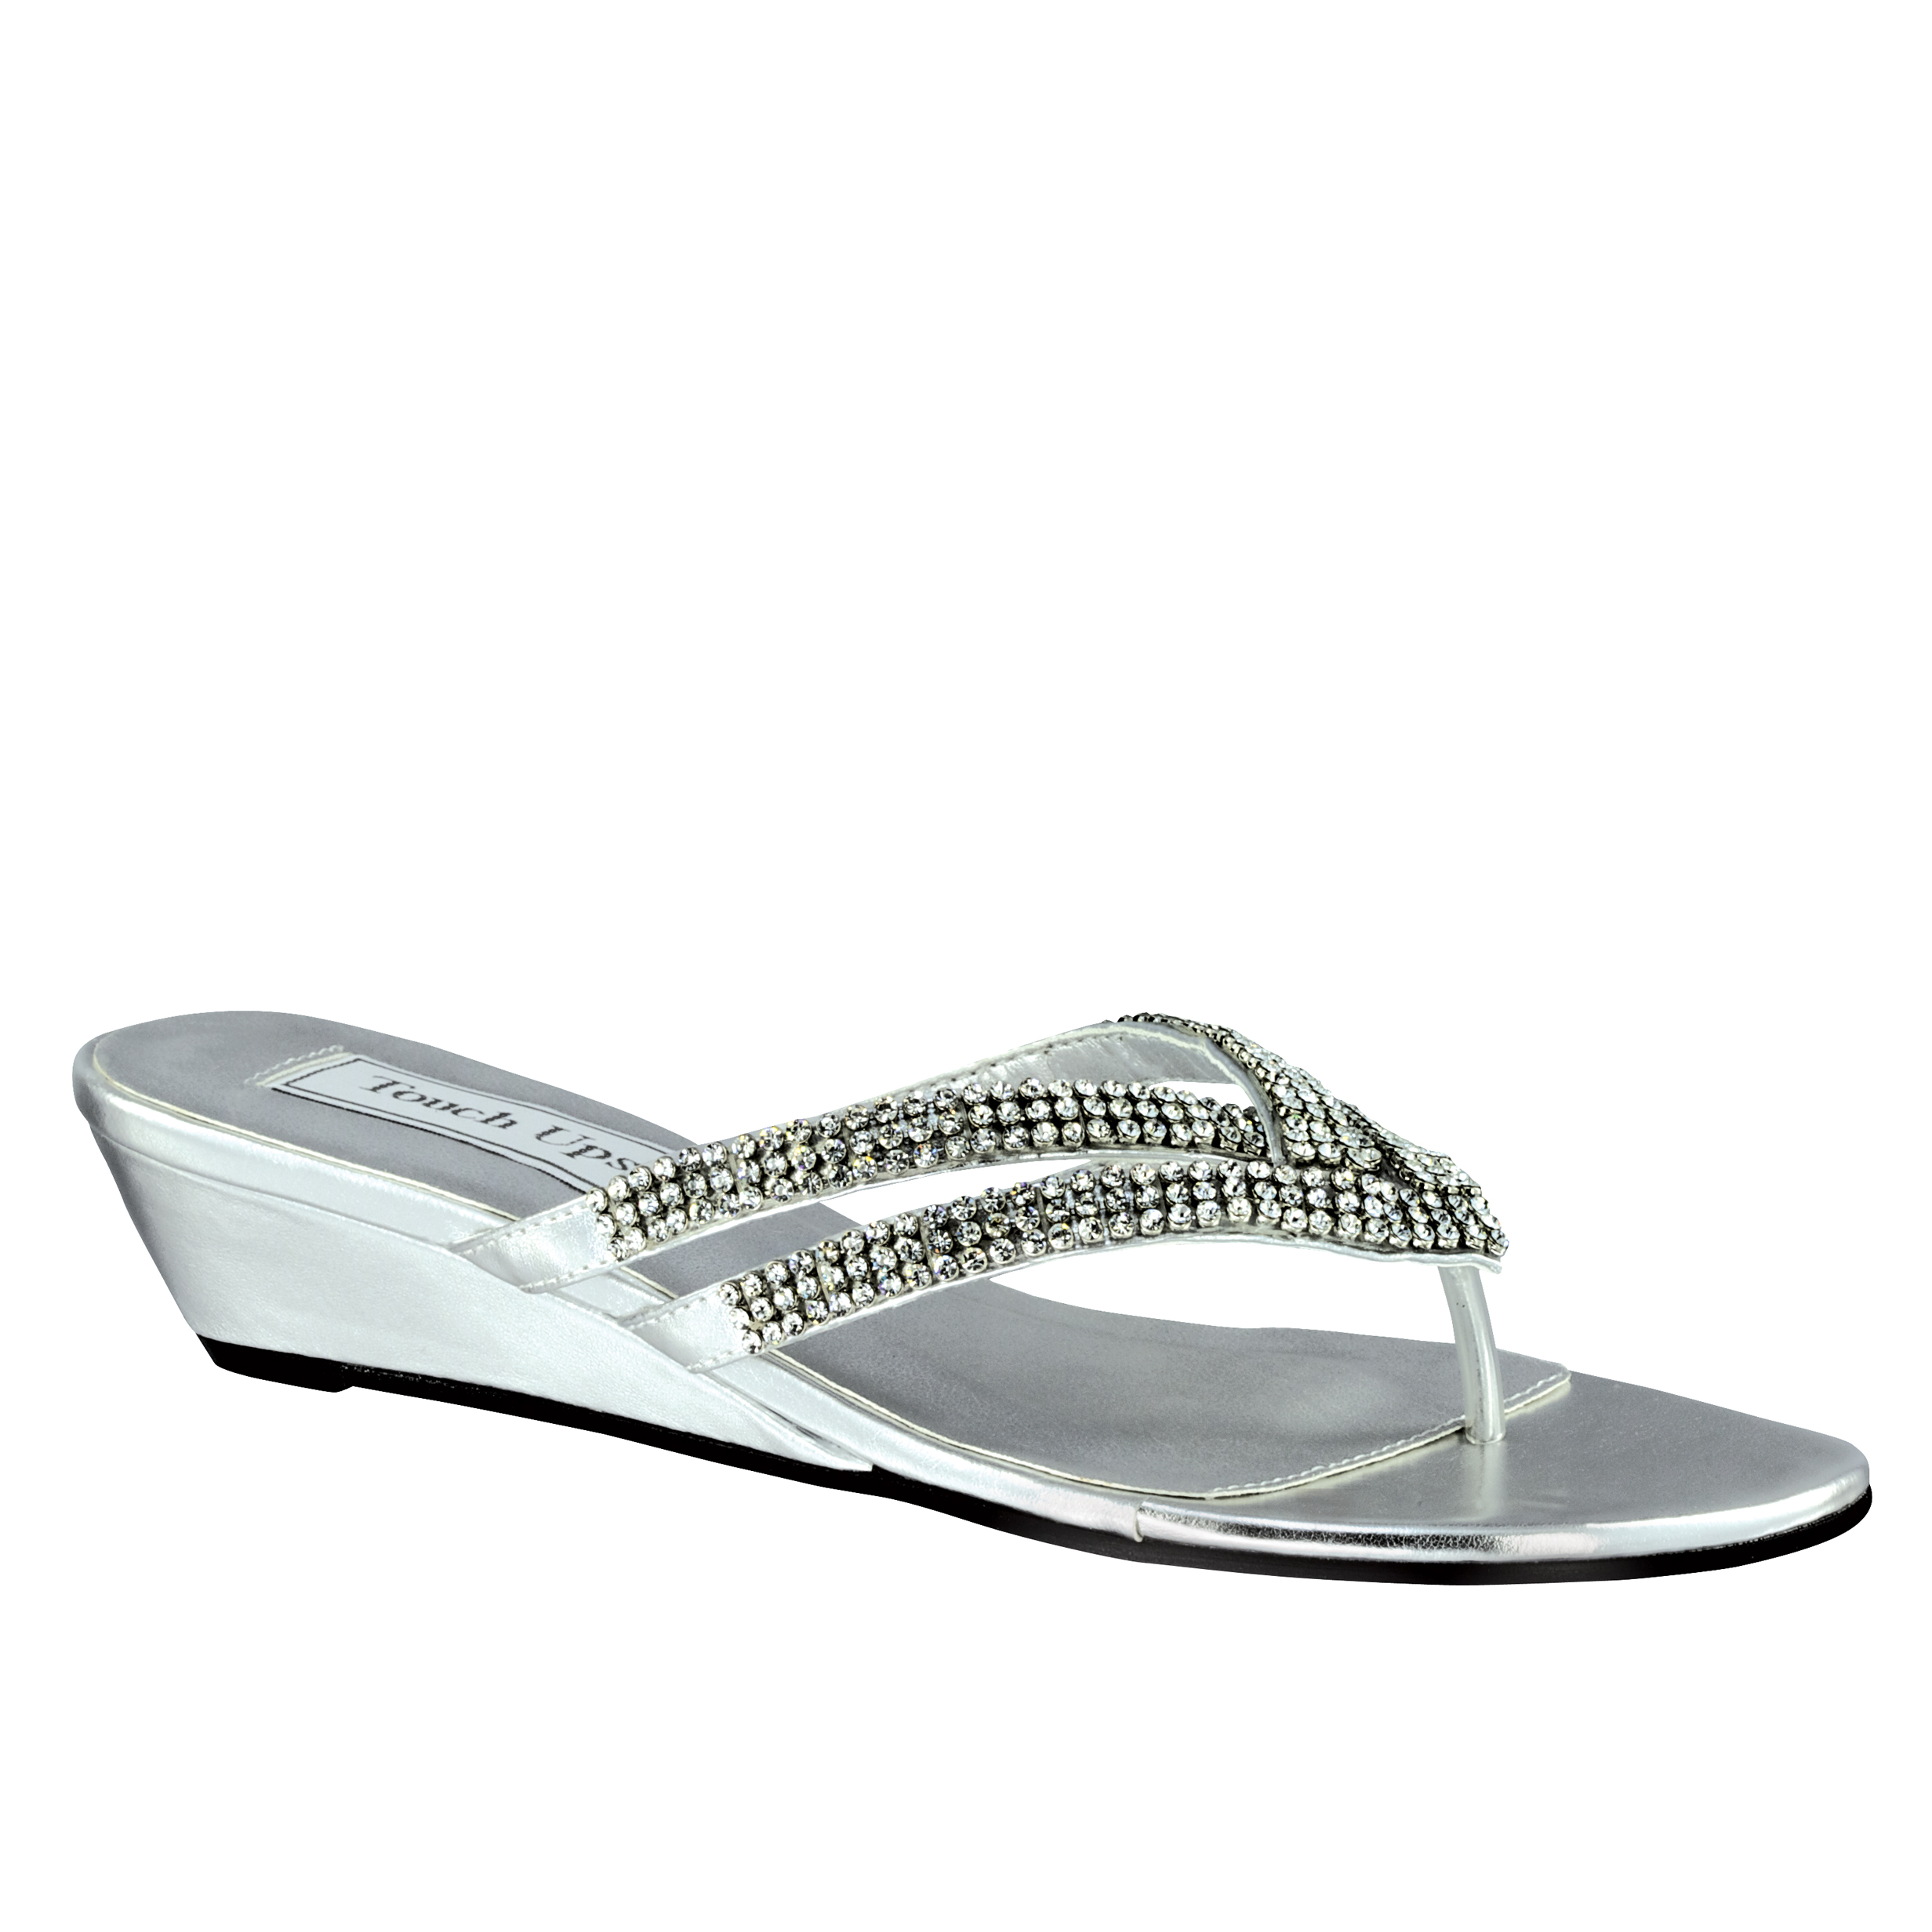 26767c2a926b Benjamin Walk 848231017271 Touch UPS Womens Tango Wedge Sandal Silver Wide  7. About this product. Stock photo  Picture 1 of 2 ...